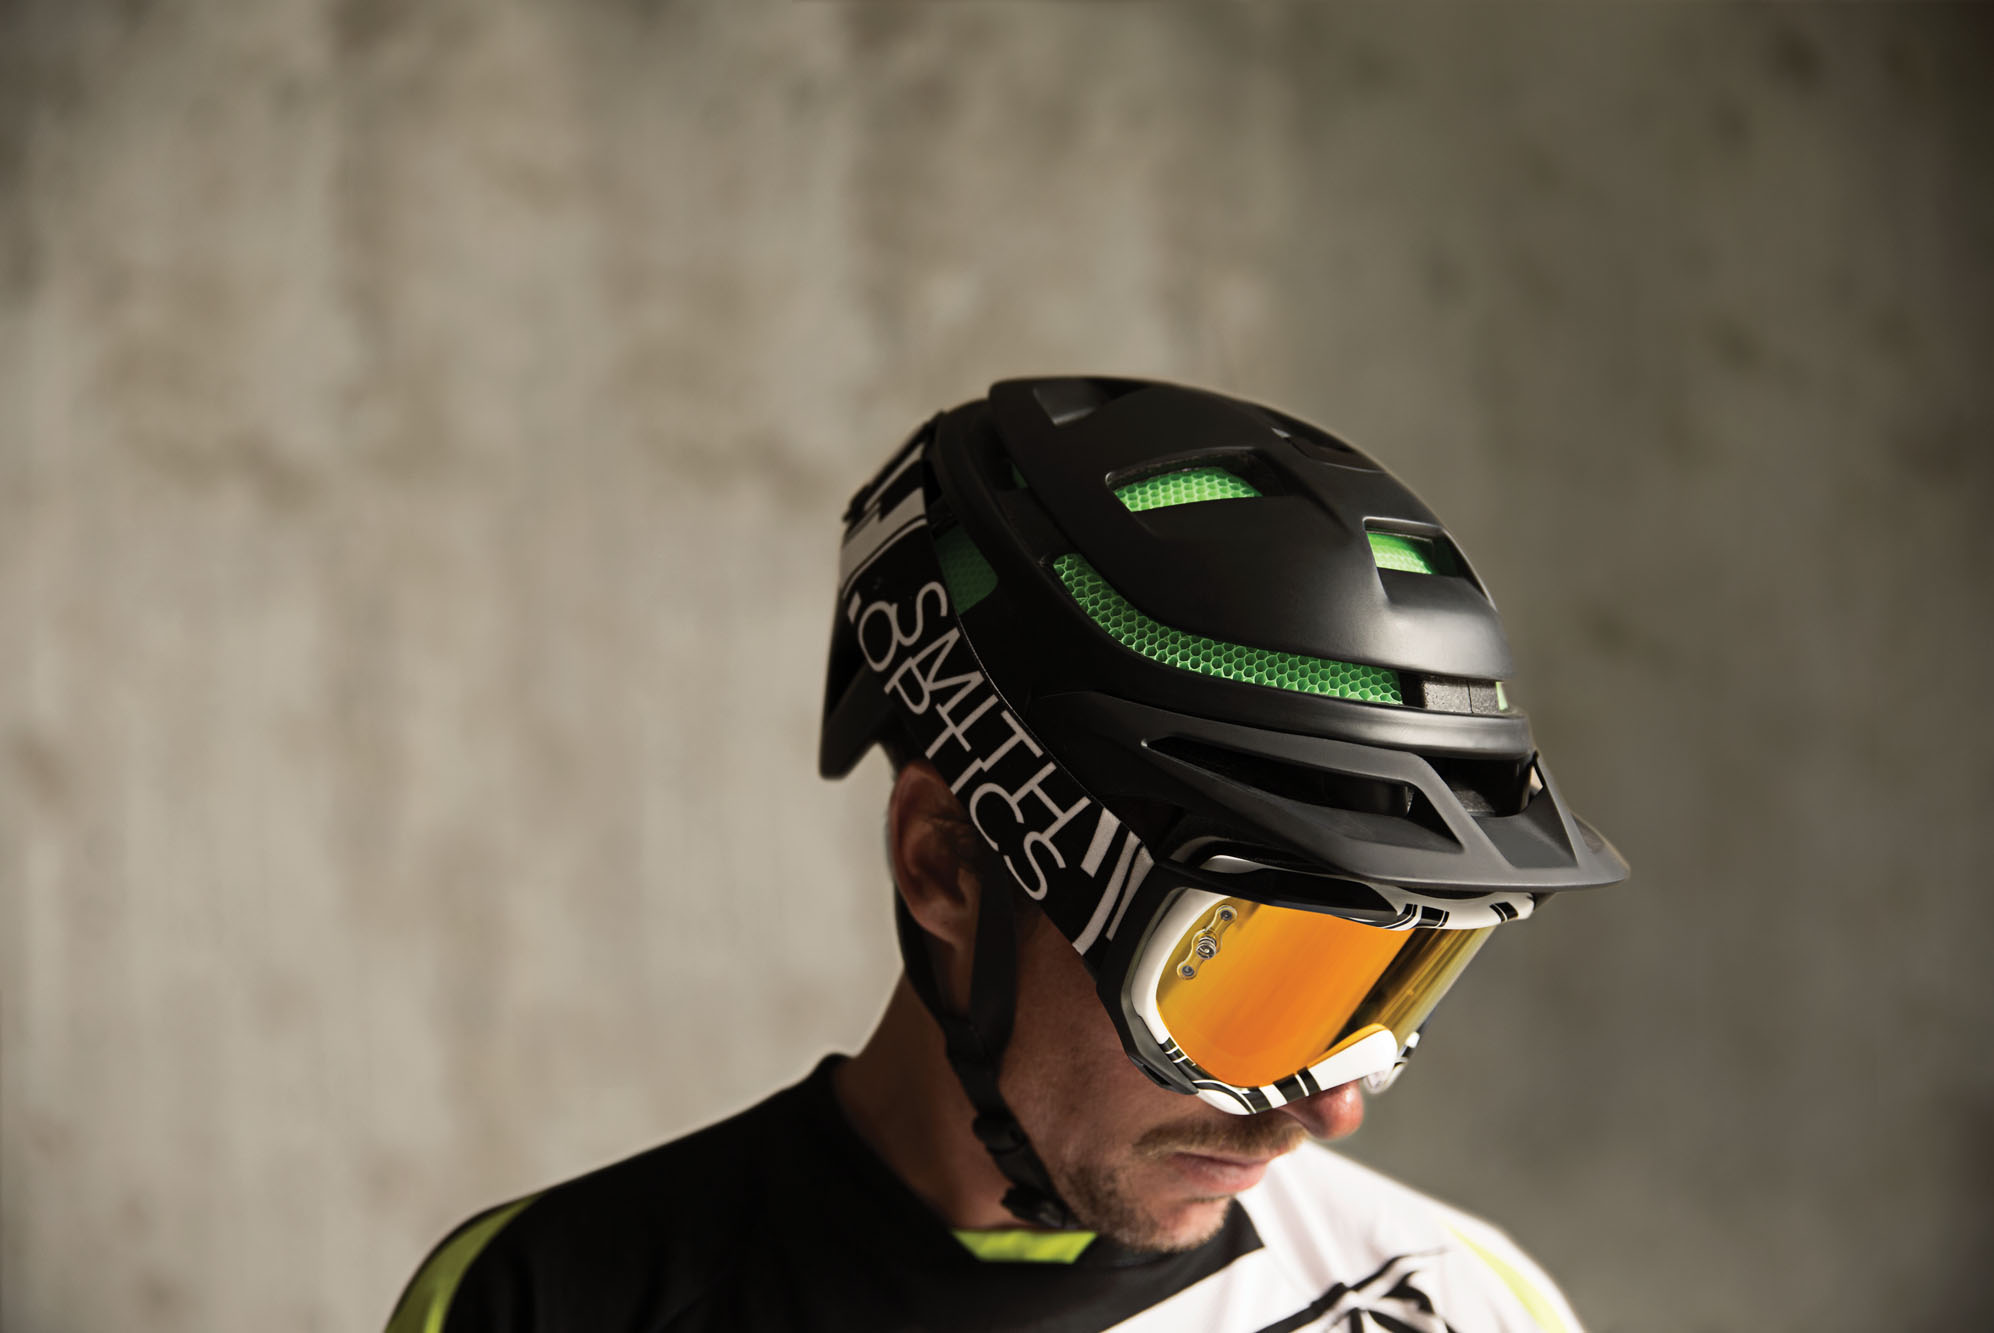 Smith Enters Bike Helmet Market With All Mountain Offering